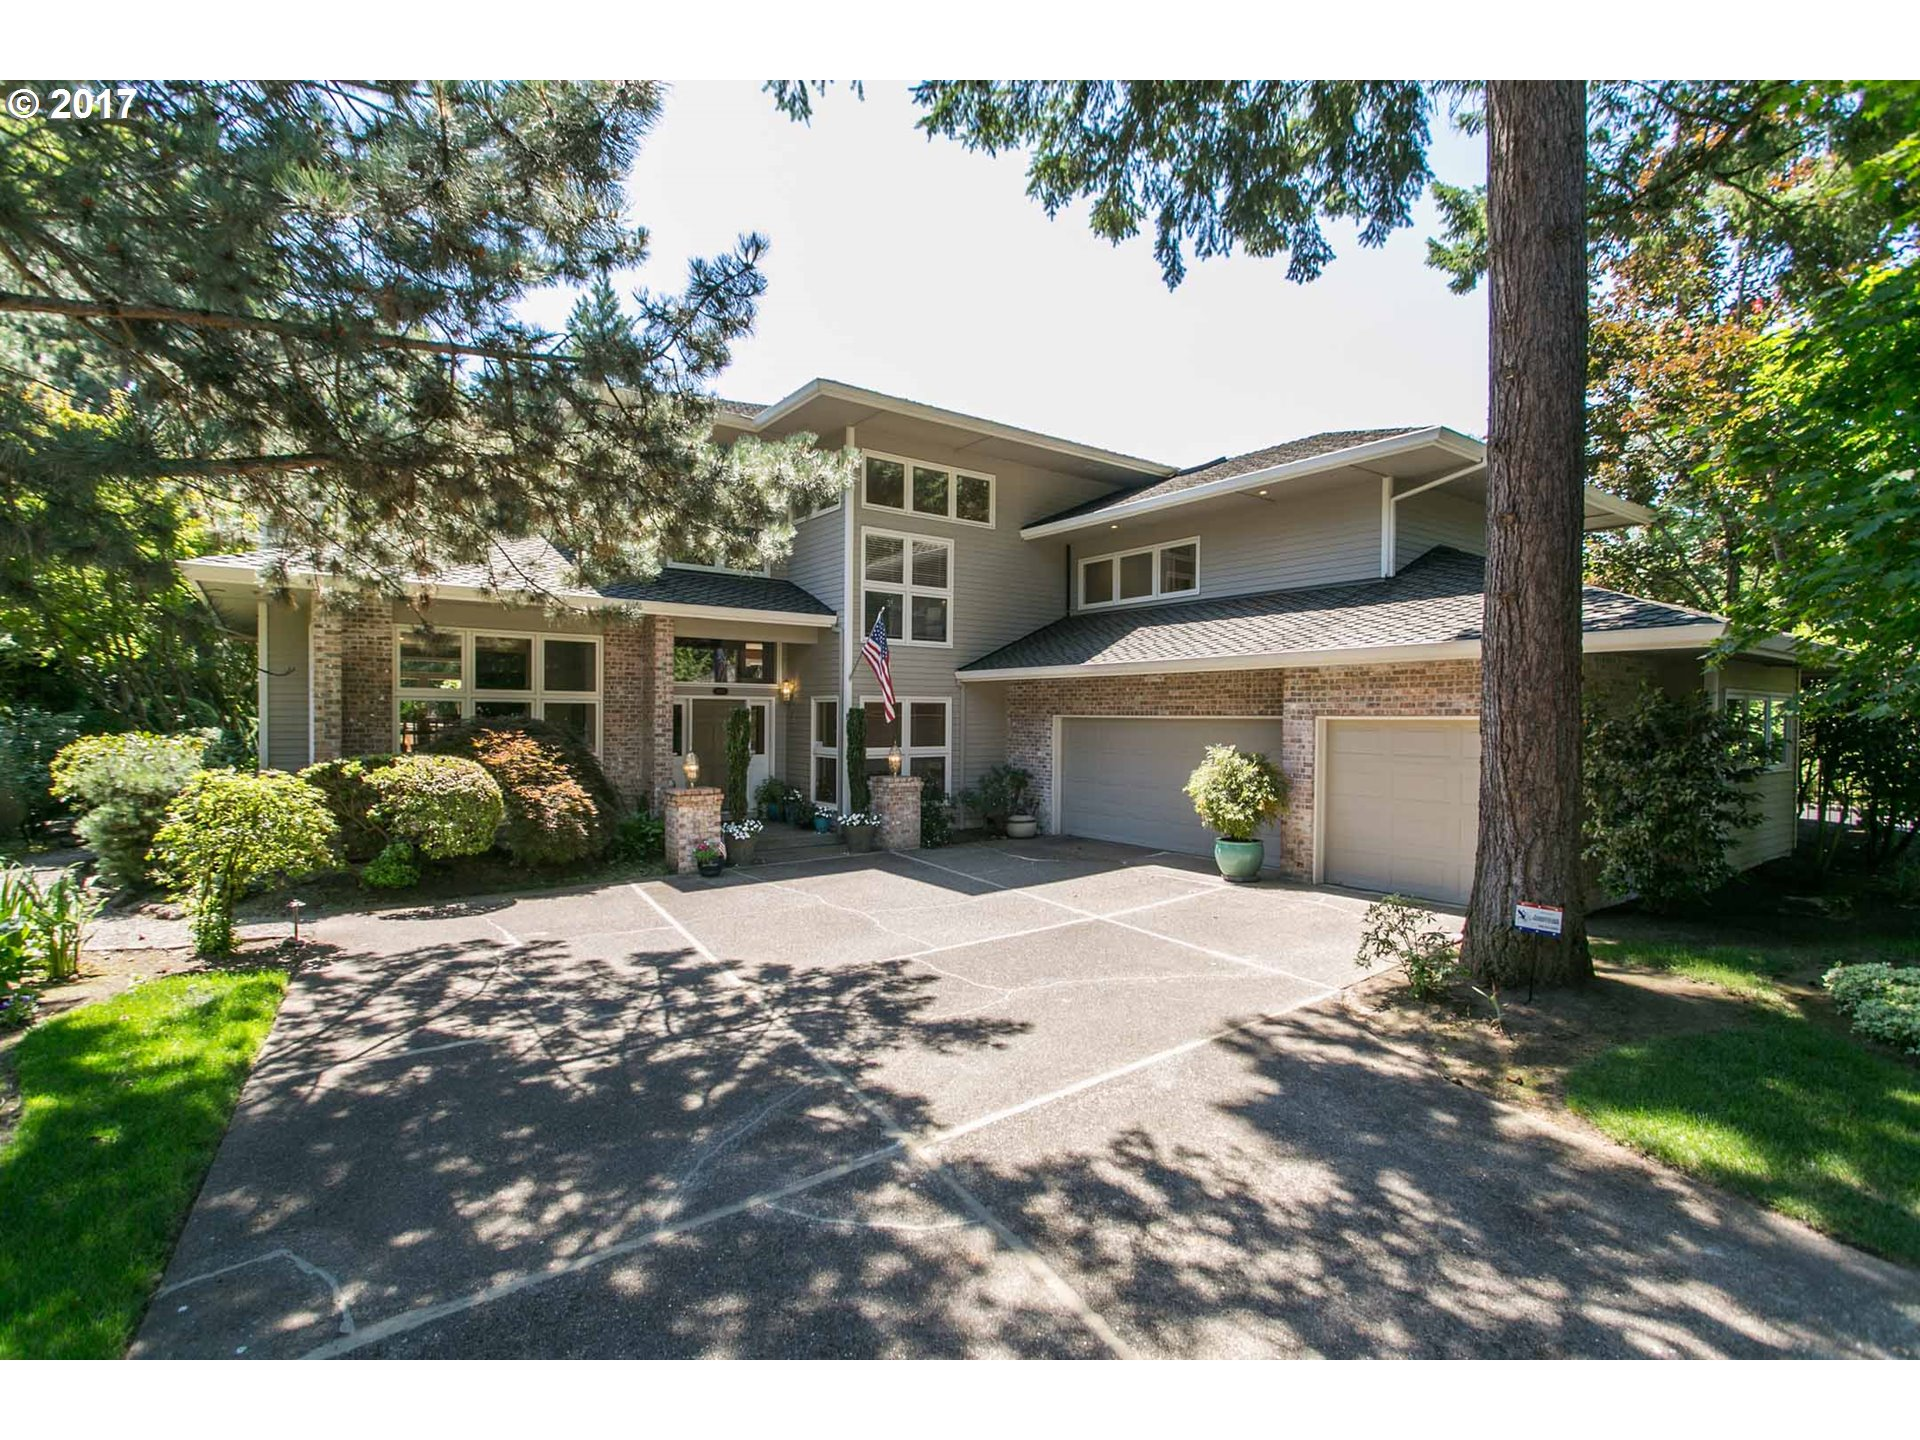 3752 sq. ft 4 bedrooms 3 bathrooms  House For Sale, Portland, OR